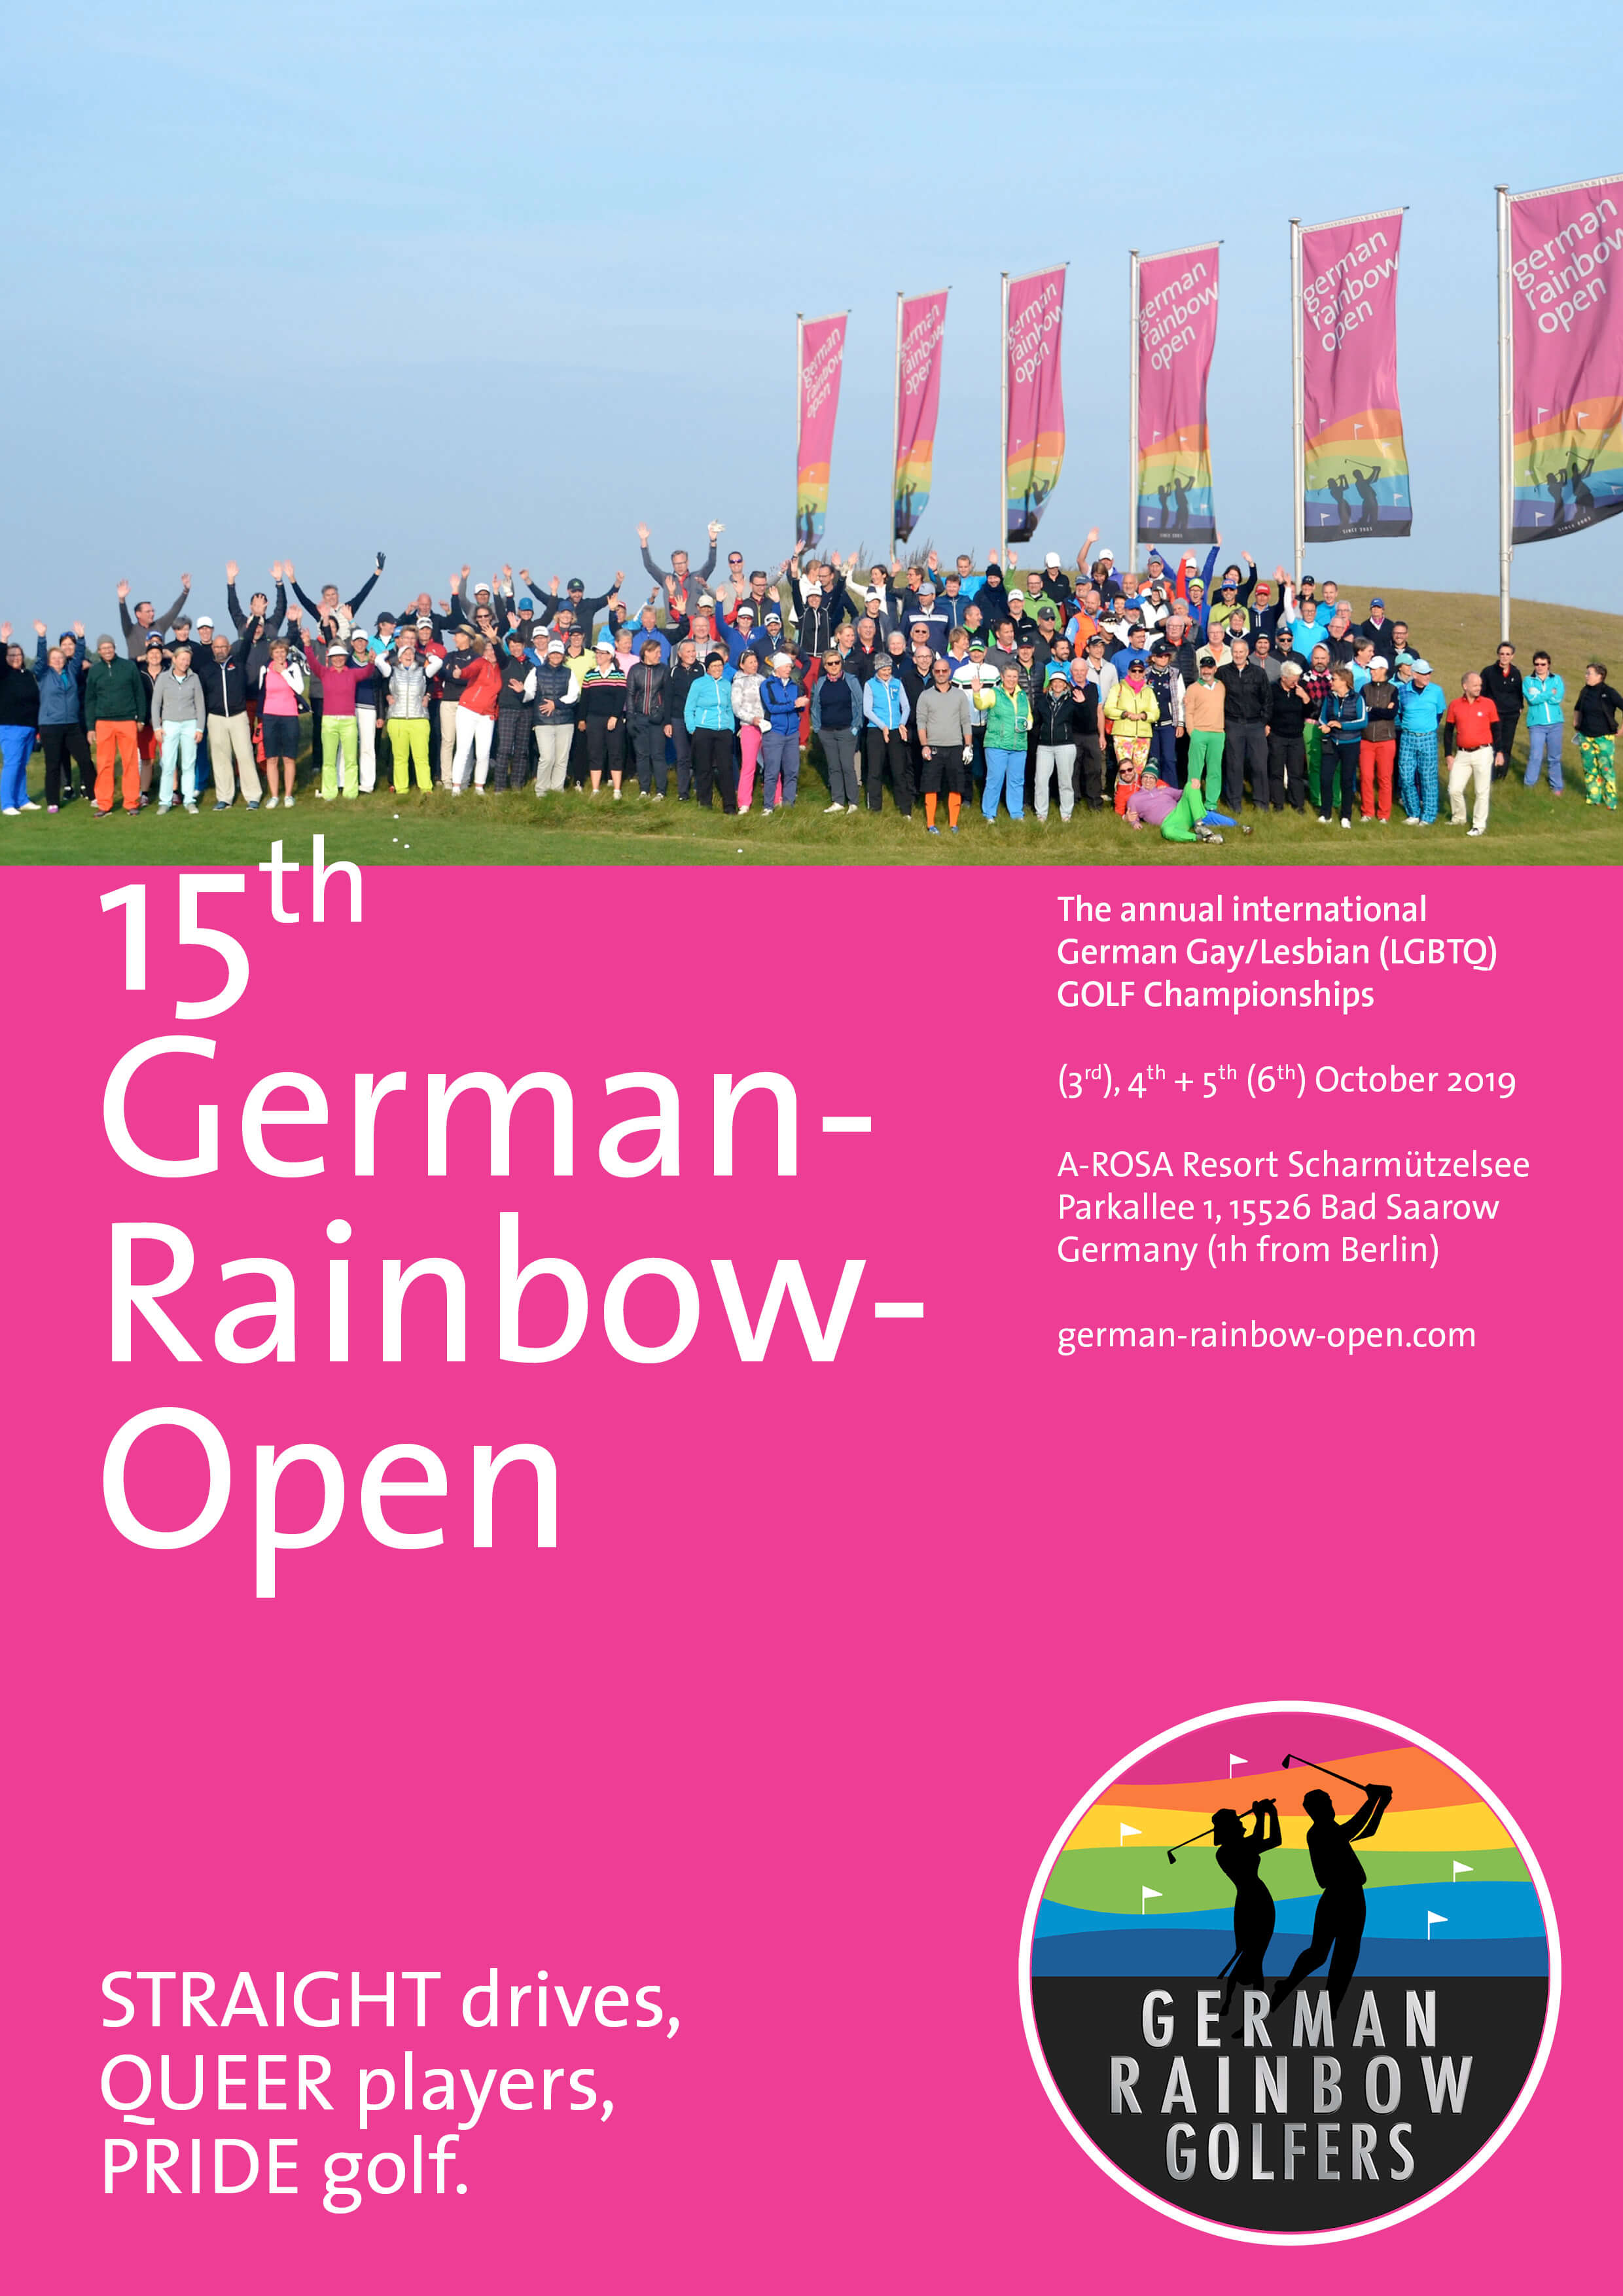 15th German-Rainbow-Open